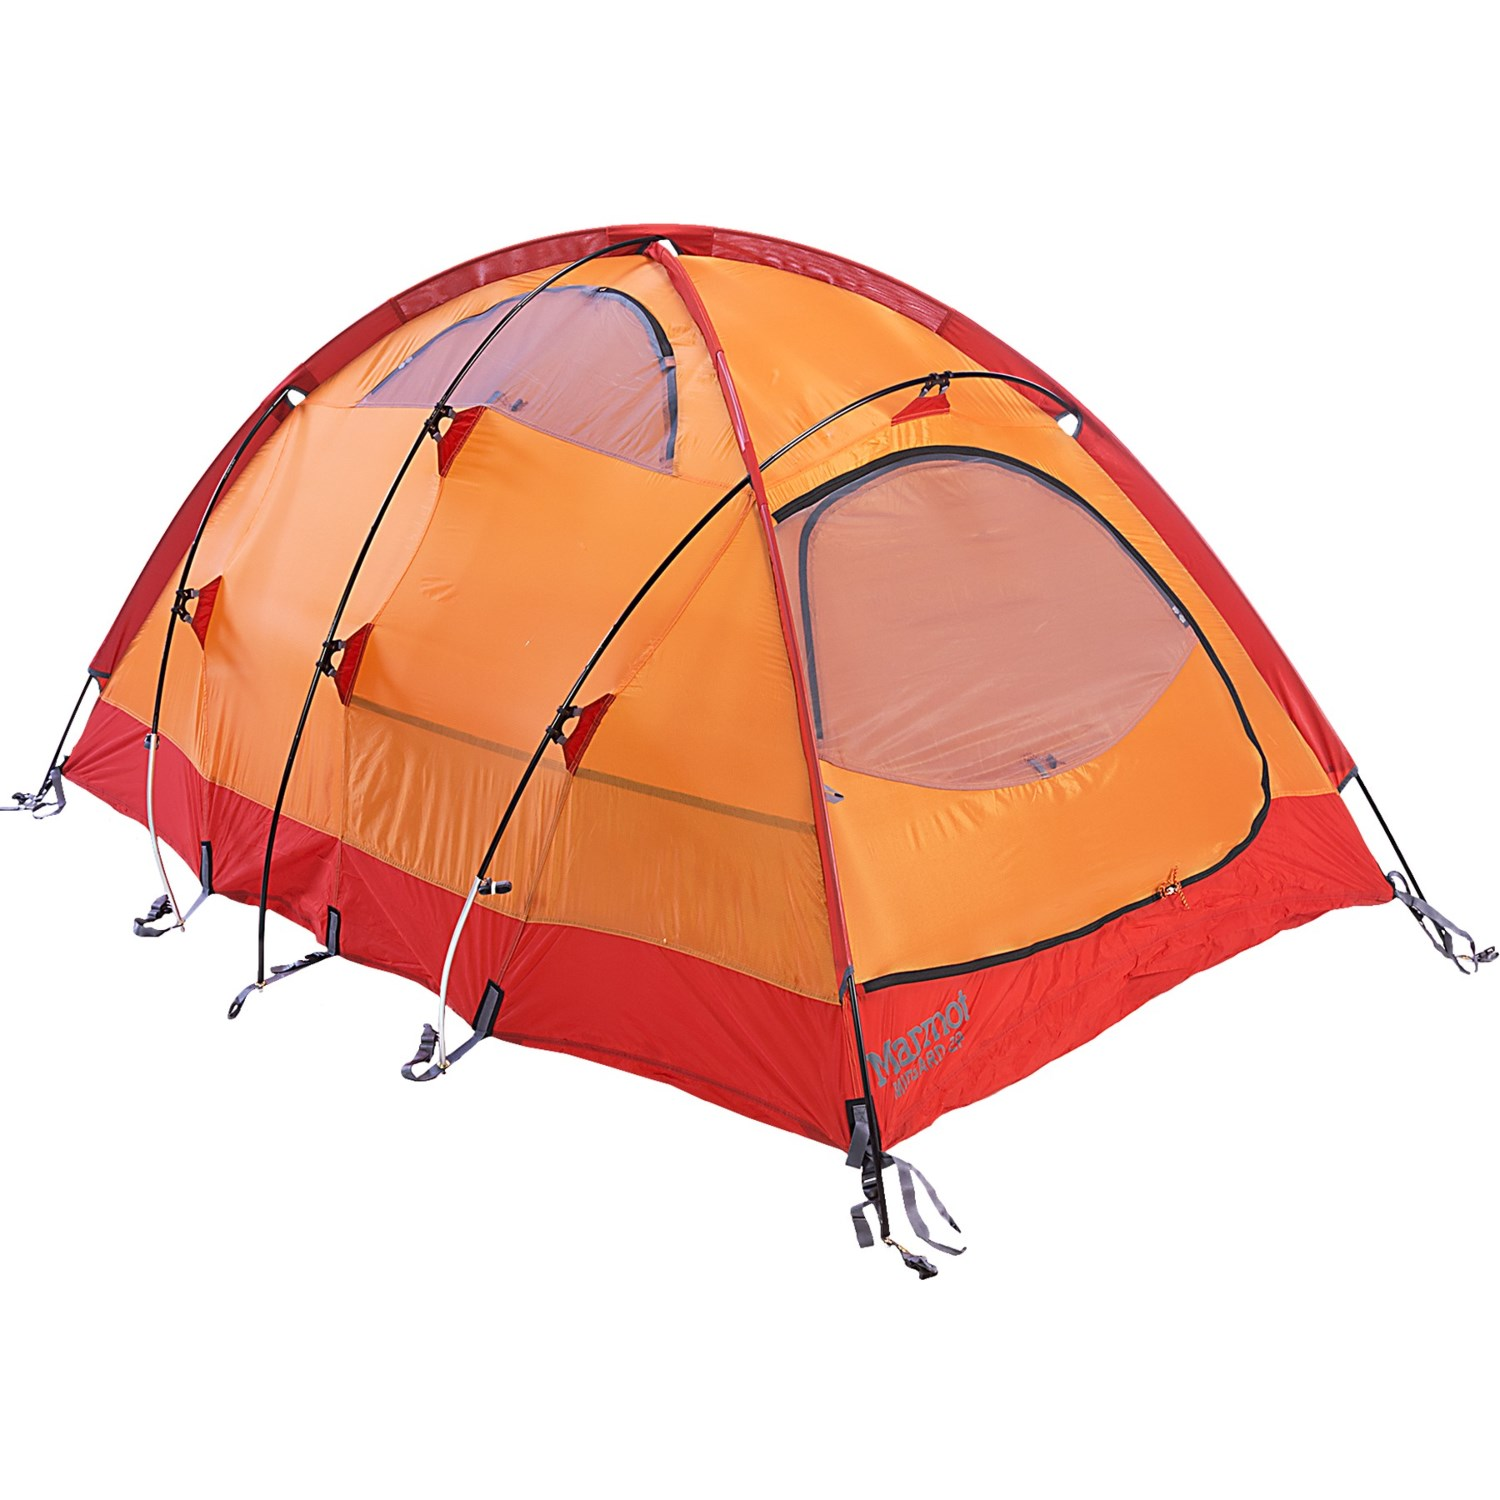 Marmot Midgard 2 Tent - 2-Person 4-Season in Terra Cotta/  sc 1 st  Sierra Trading Post & Marmot Midgard 2 Tent - 2-Person 4-Season